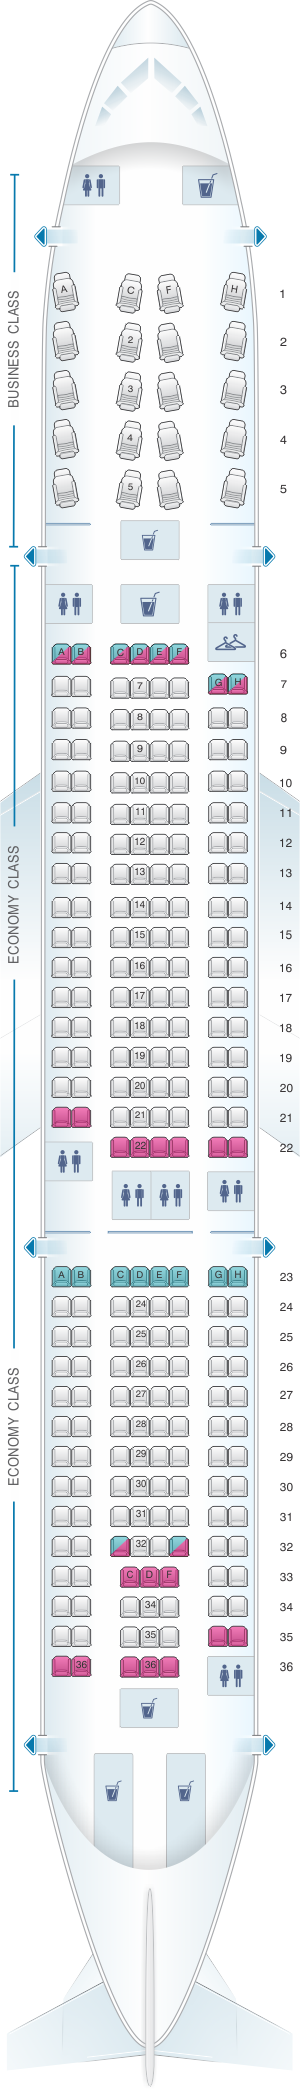 Seat map for American Airlines Airbus A330 200